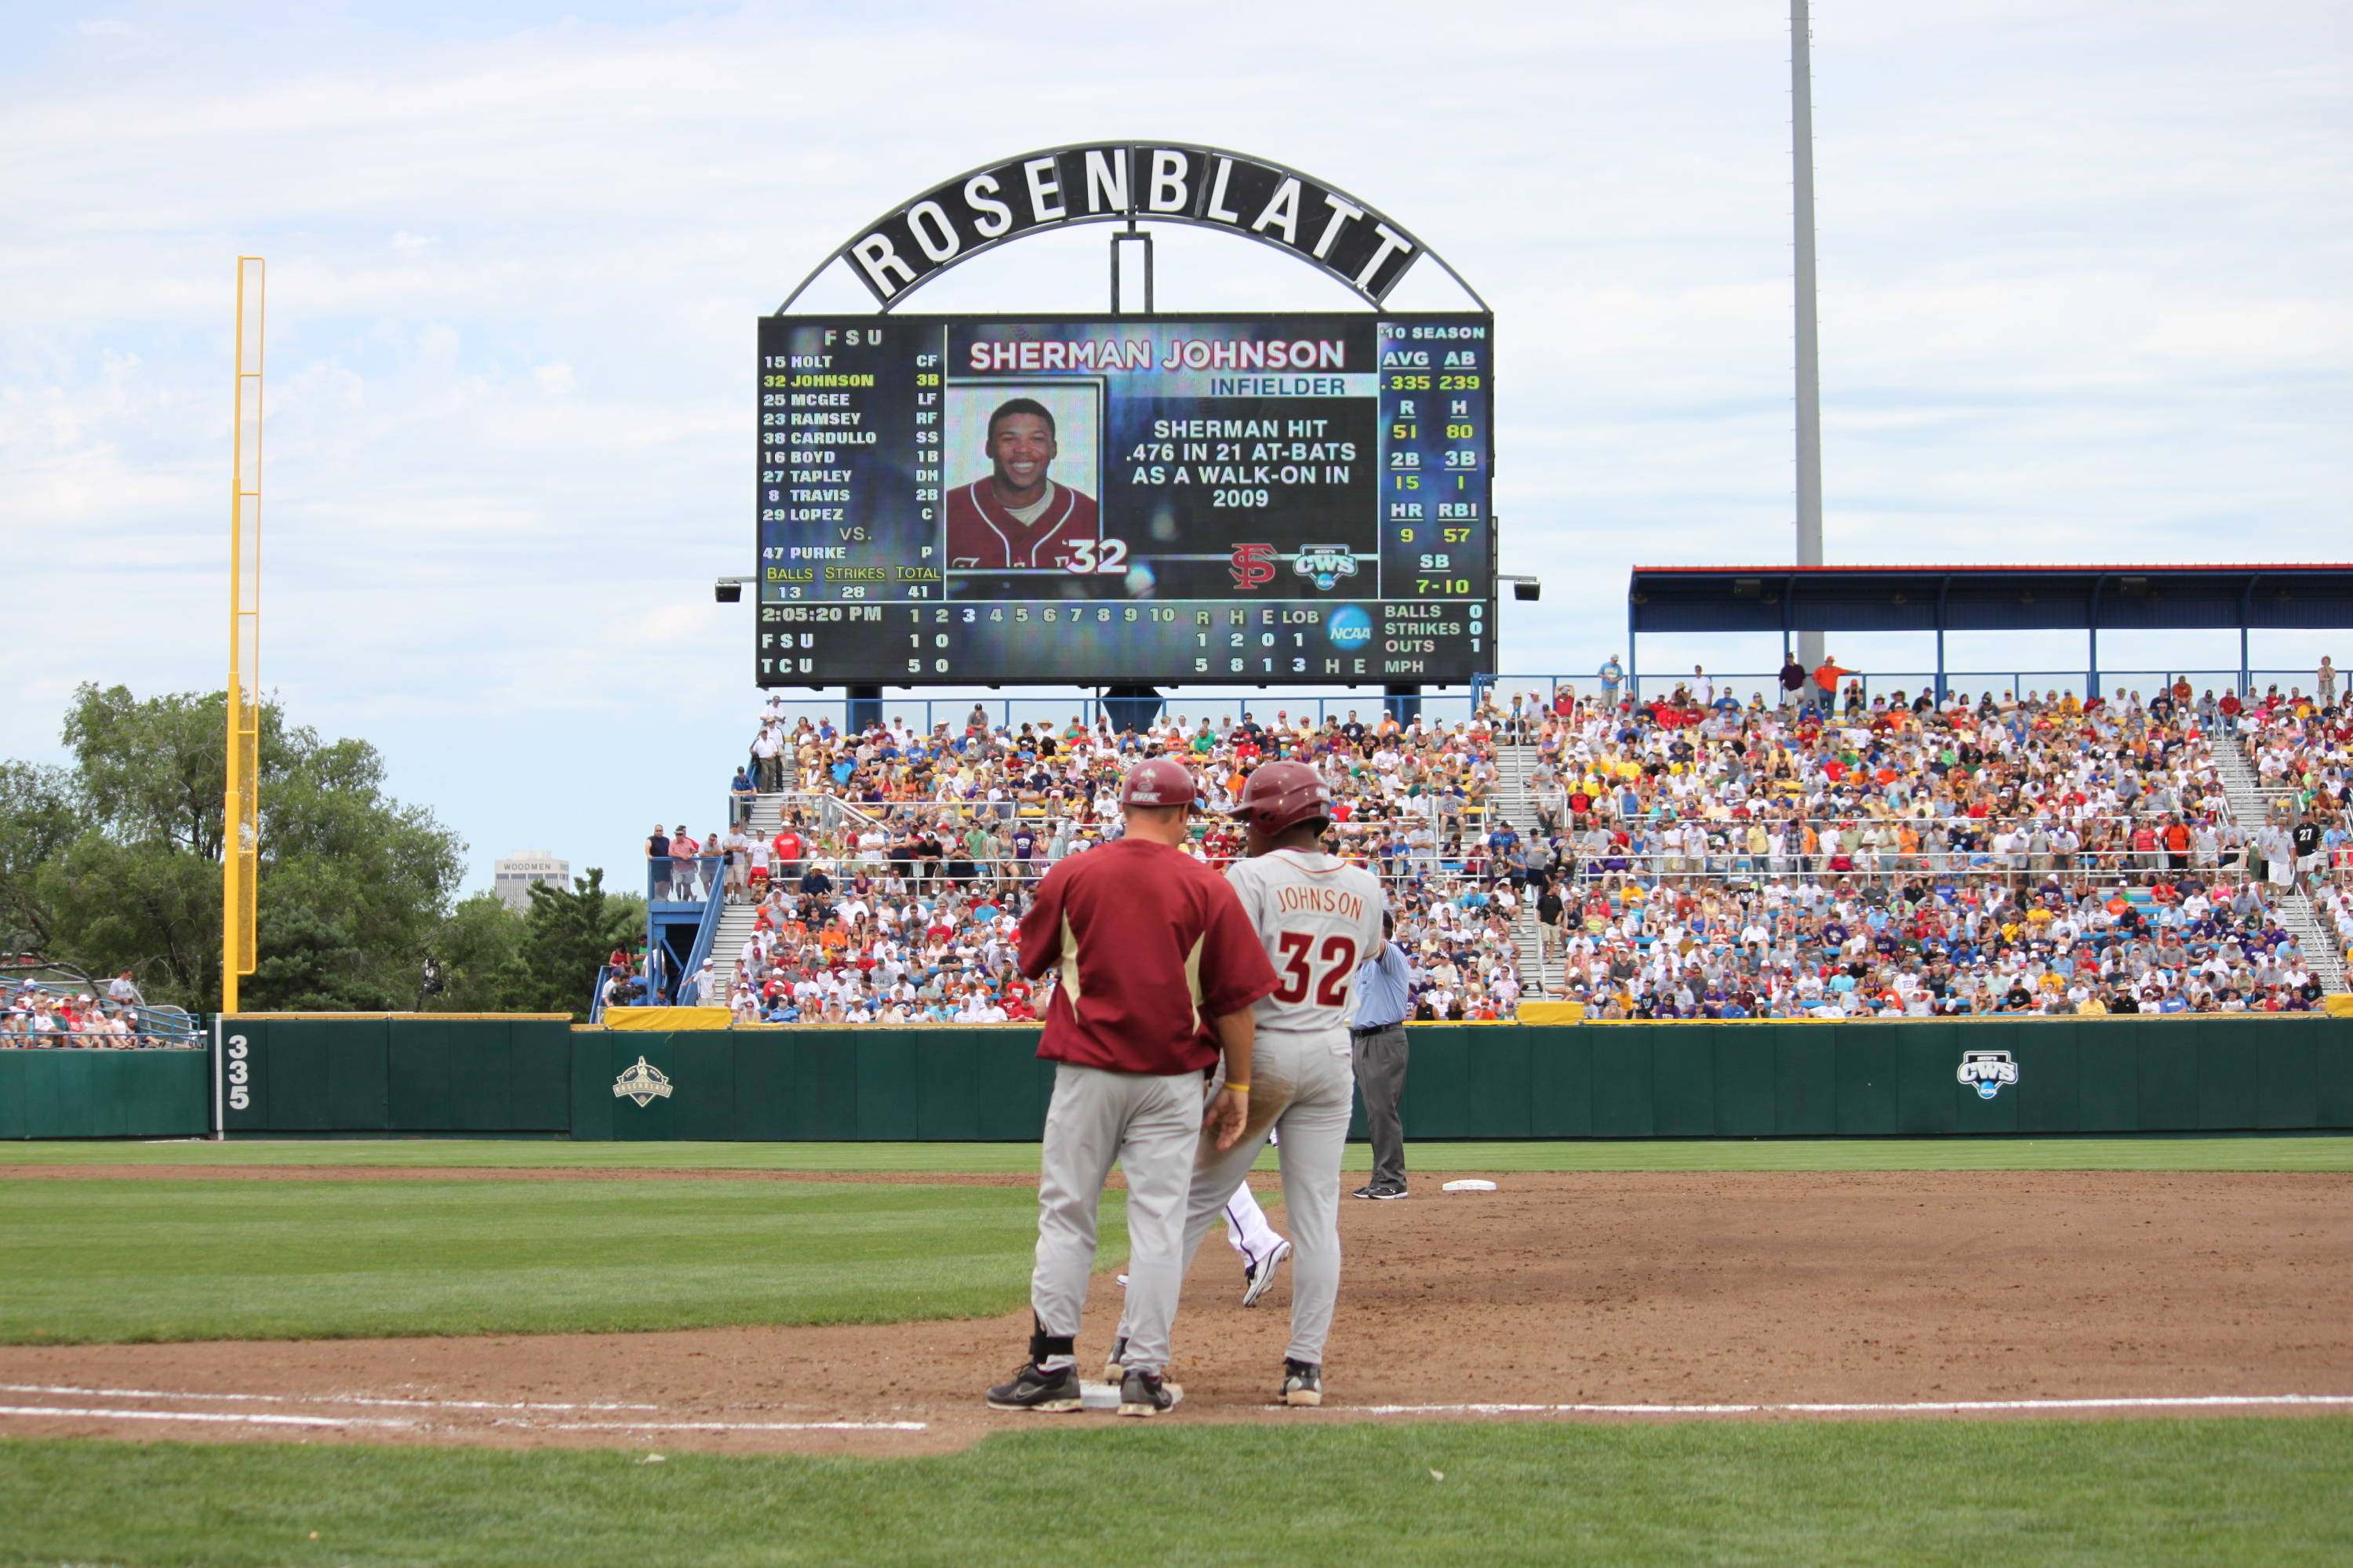 2010 College World Series Game 1 vs. TCU